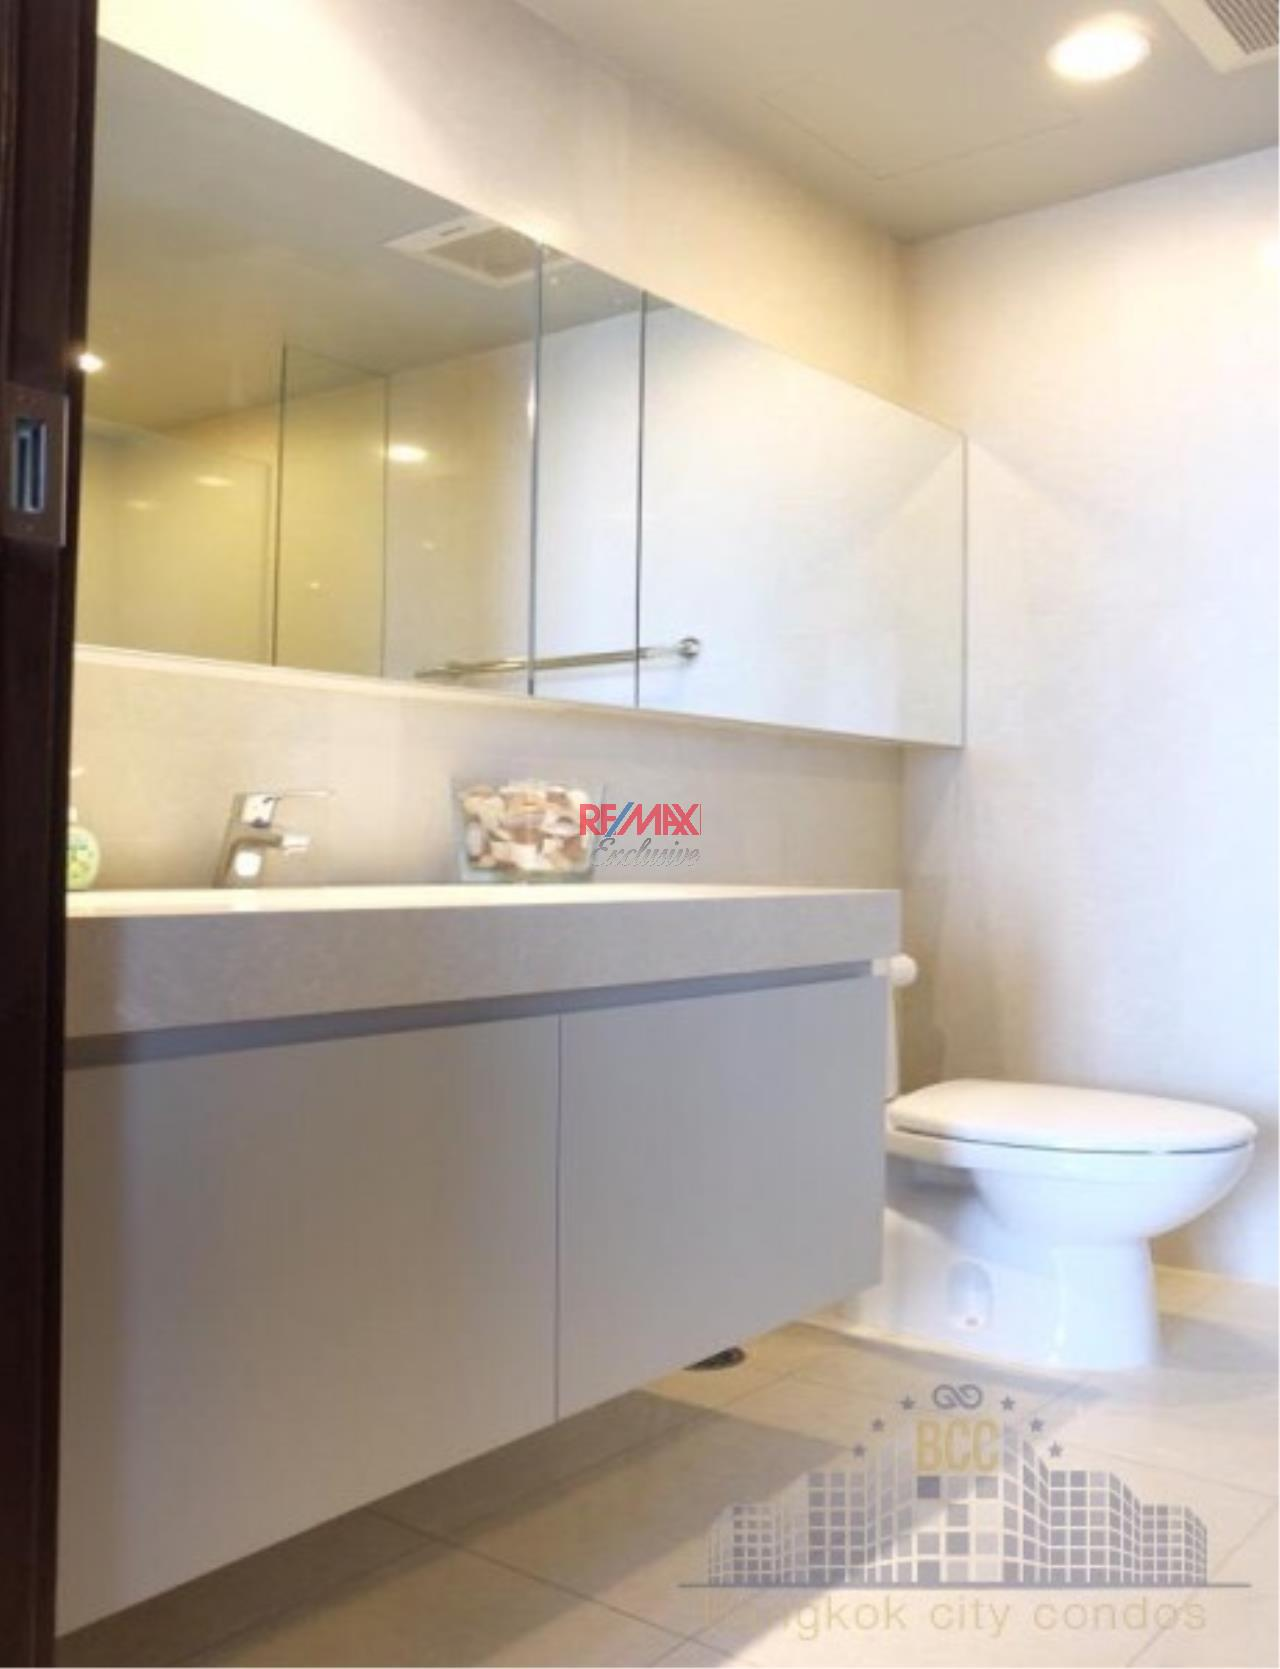 RE/MAX Exclusive Agency's Quattro By Sansiri Huge And Modern 1 Bedroom For Rent/ Sale  19